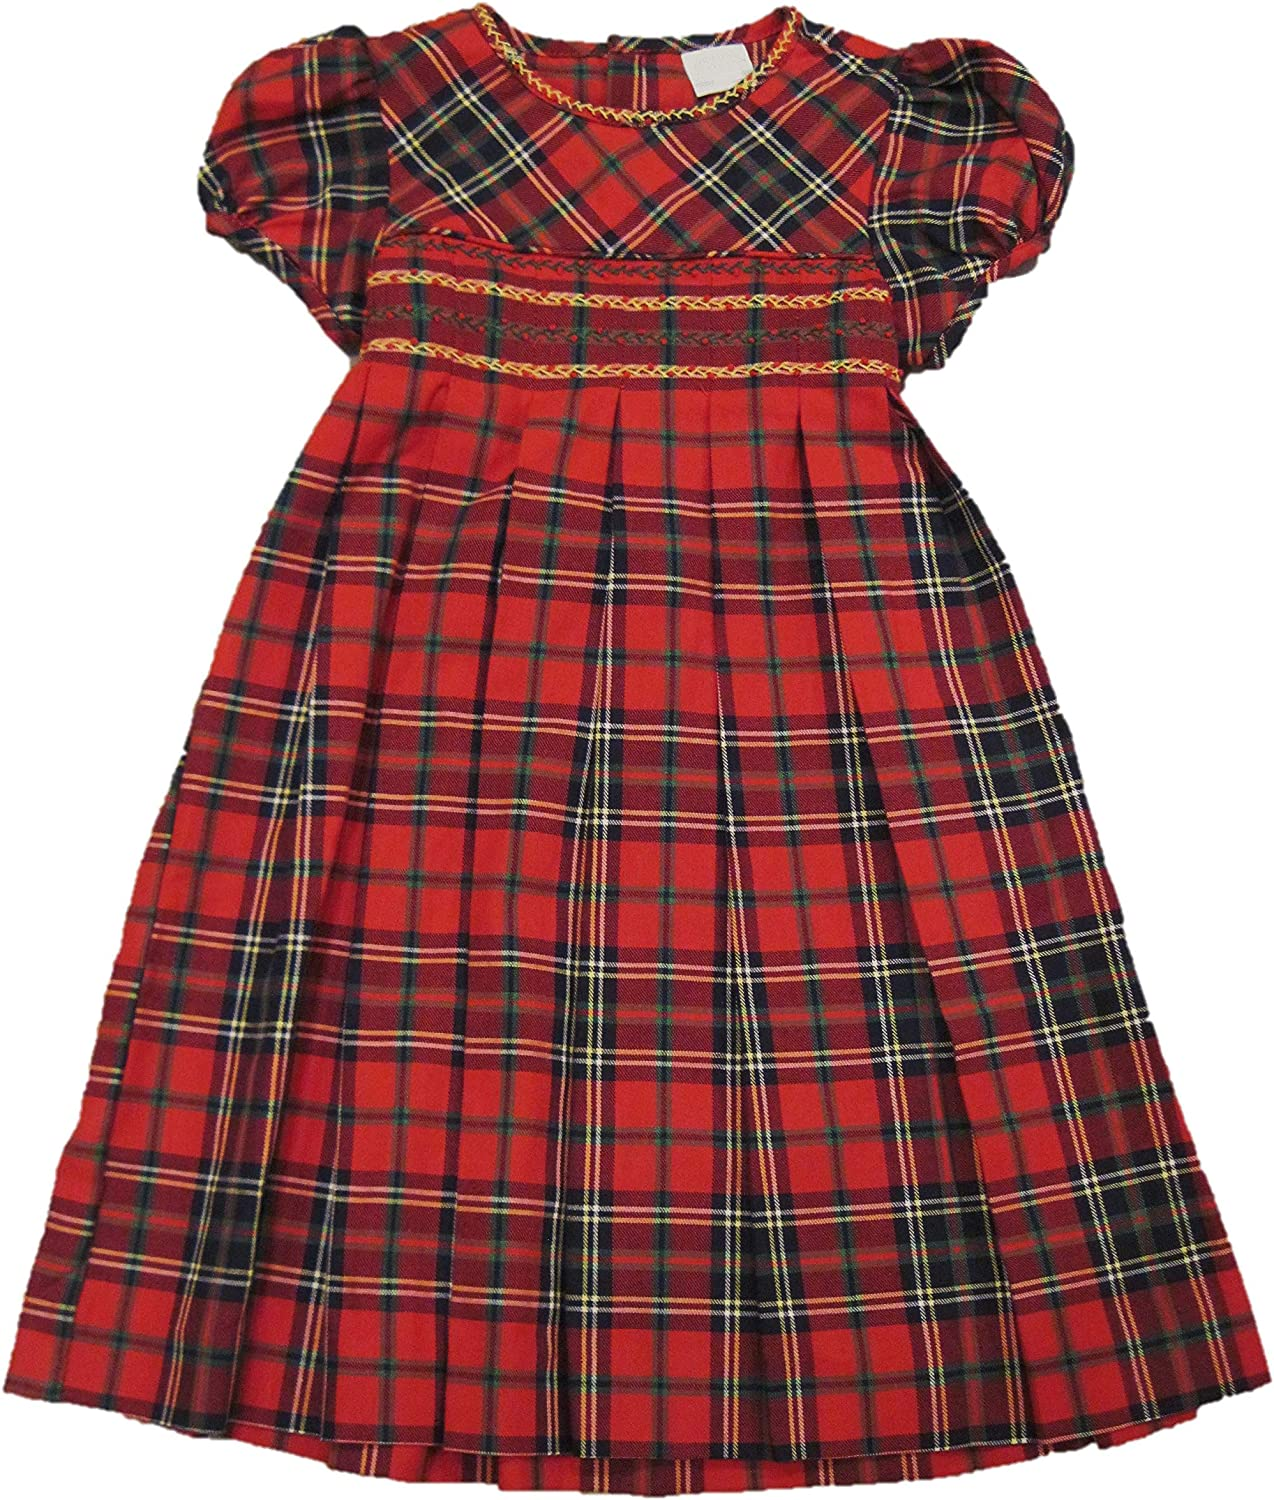 red cotton tartan plaid autumn LUDIVINE dress baby girl child white belt embroidered smocked Christmas, long sleeves 34 Winter